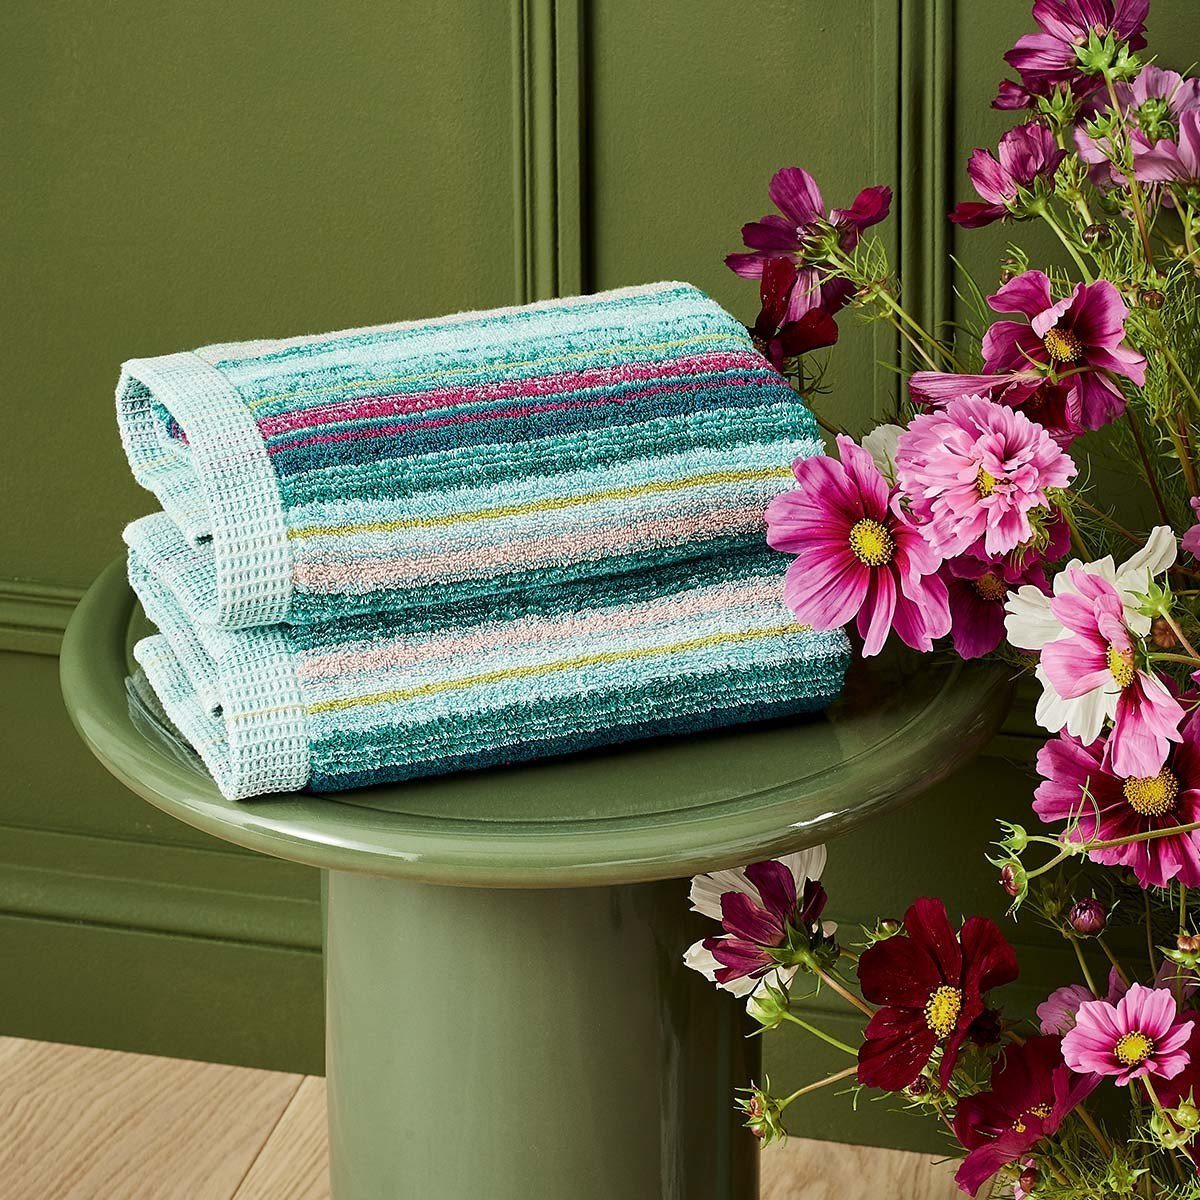 Fougue Bath Towels by Yves Delorme